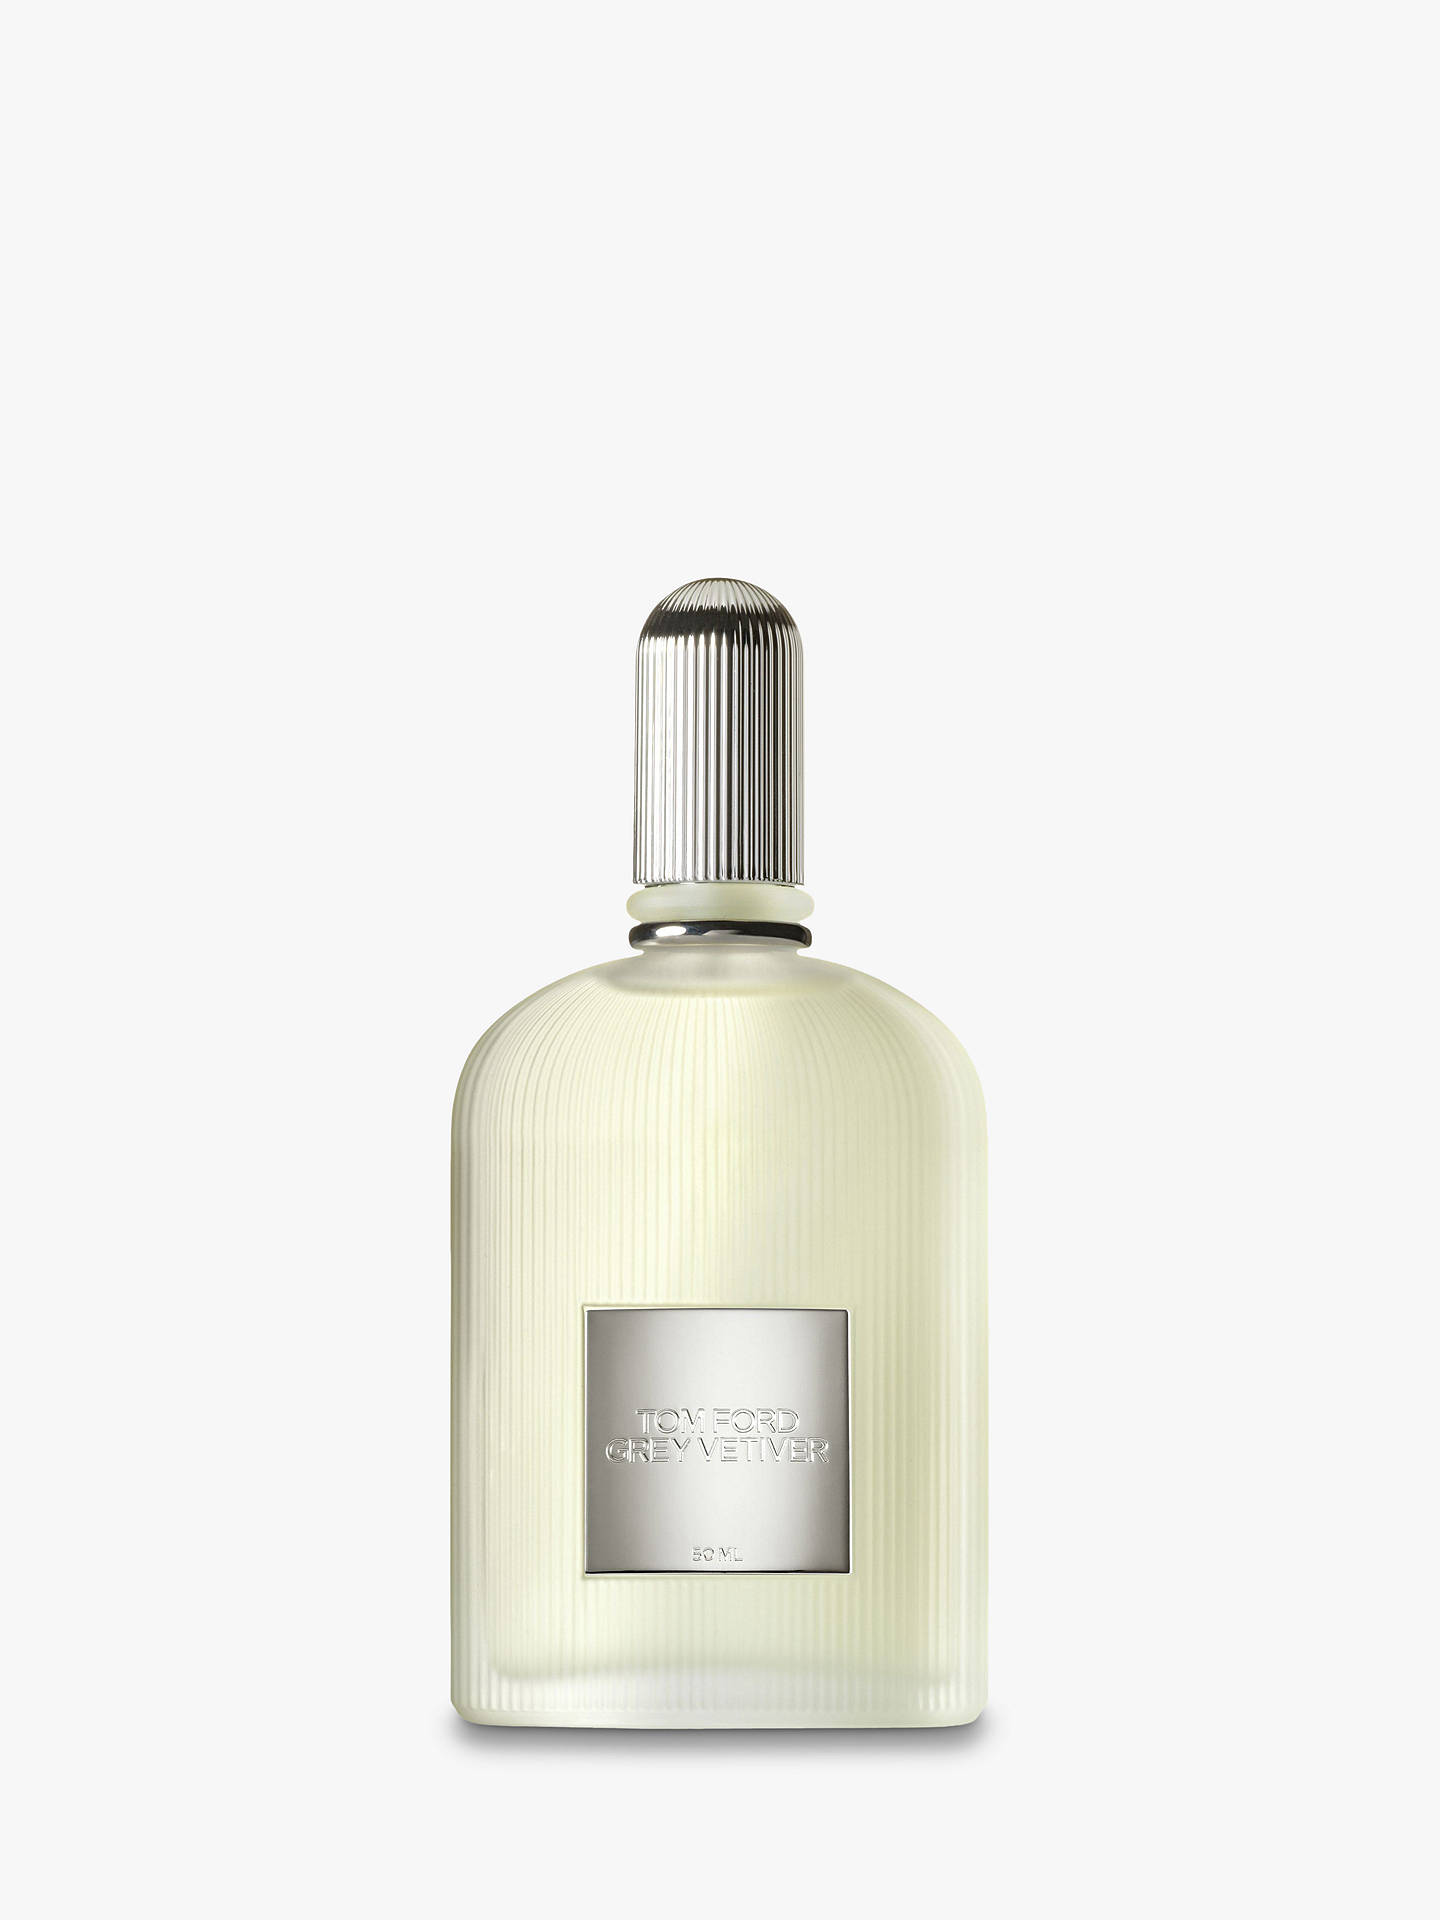 Buy TOM FORD Grey Vetiver Eau de Parfum, 100ml Online at johnlewis.com